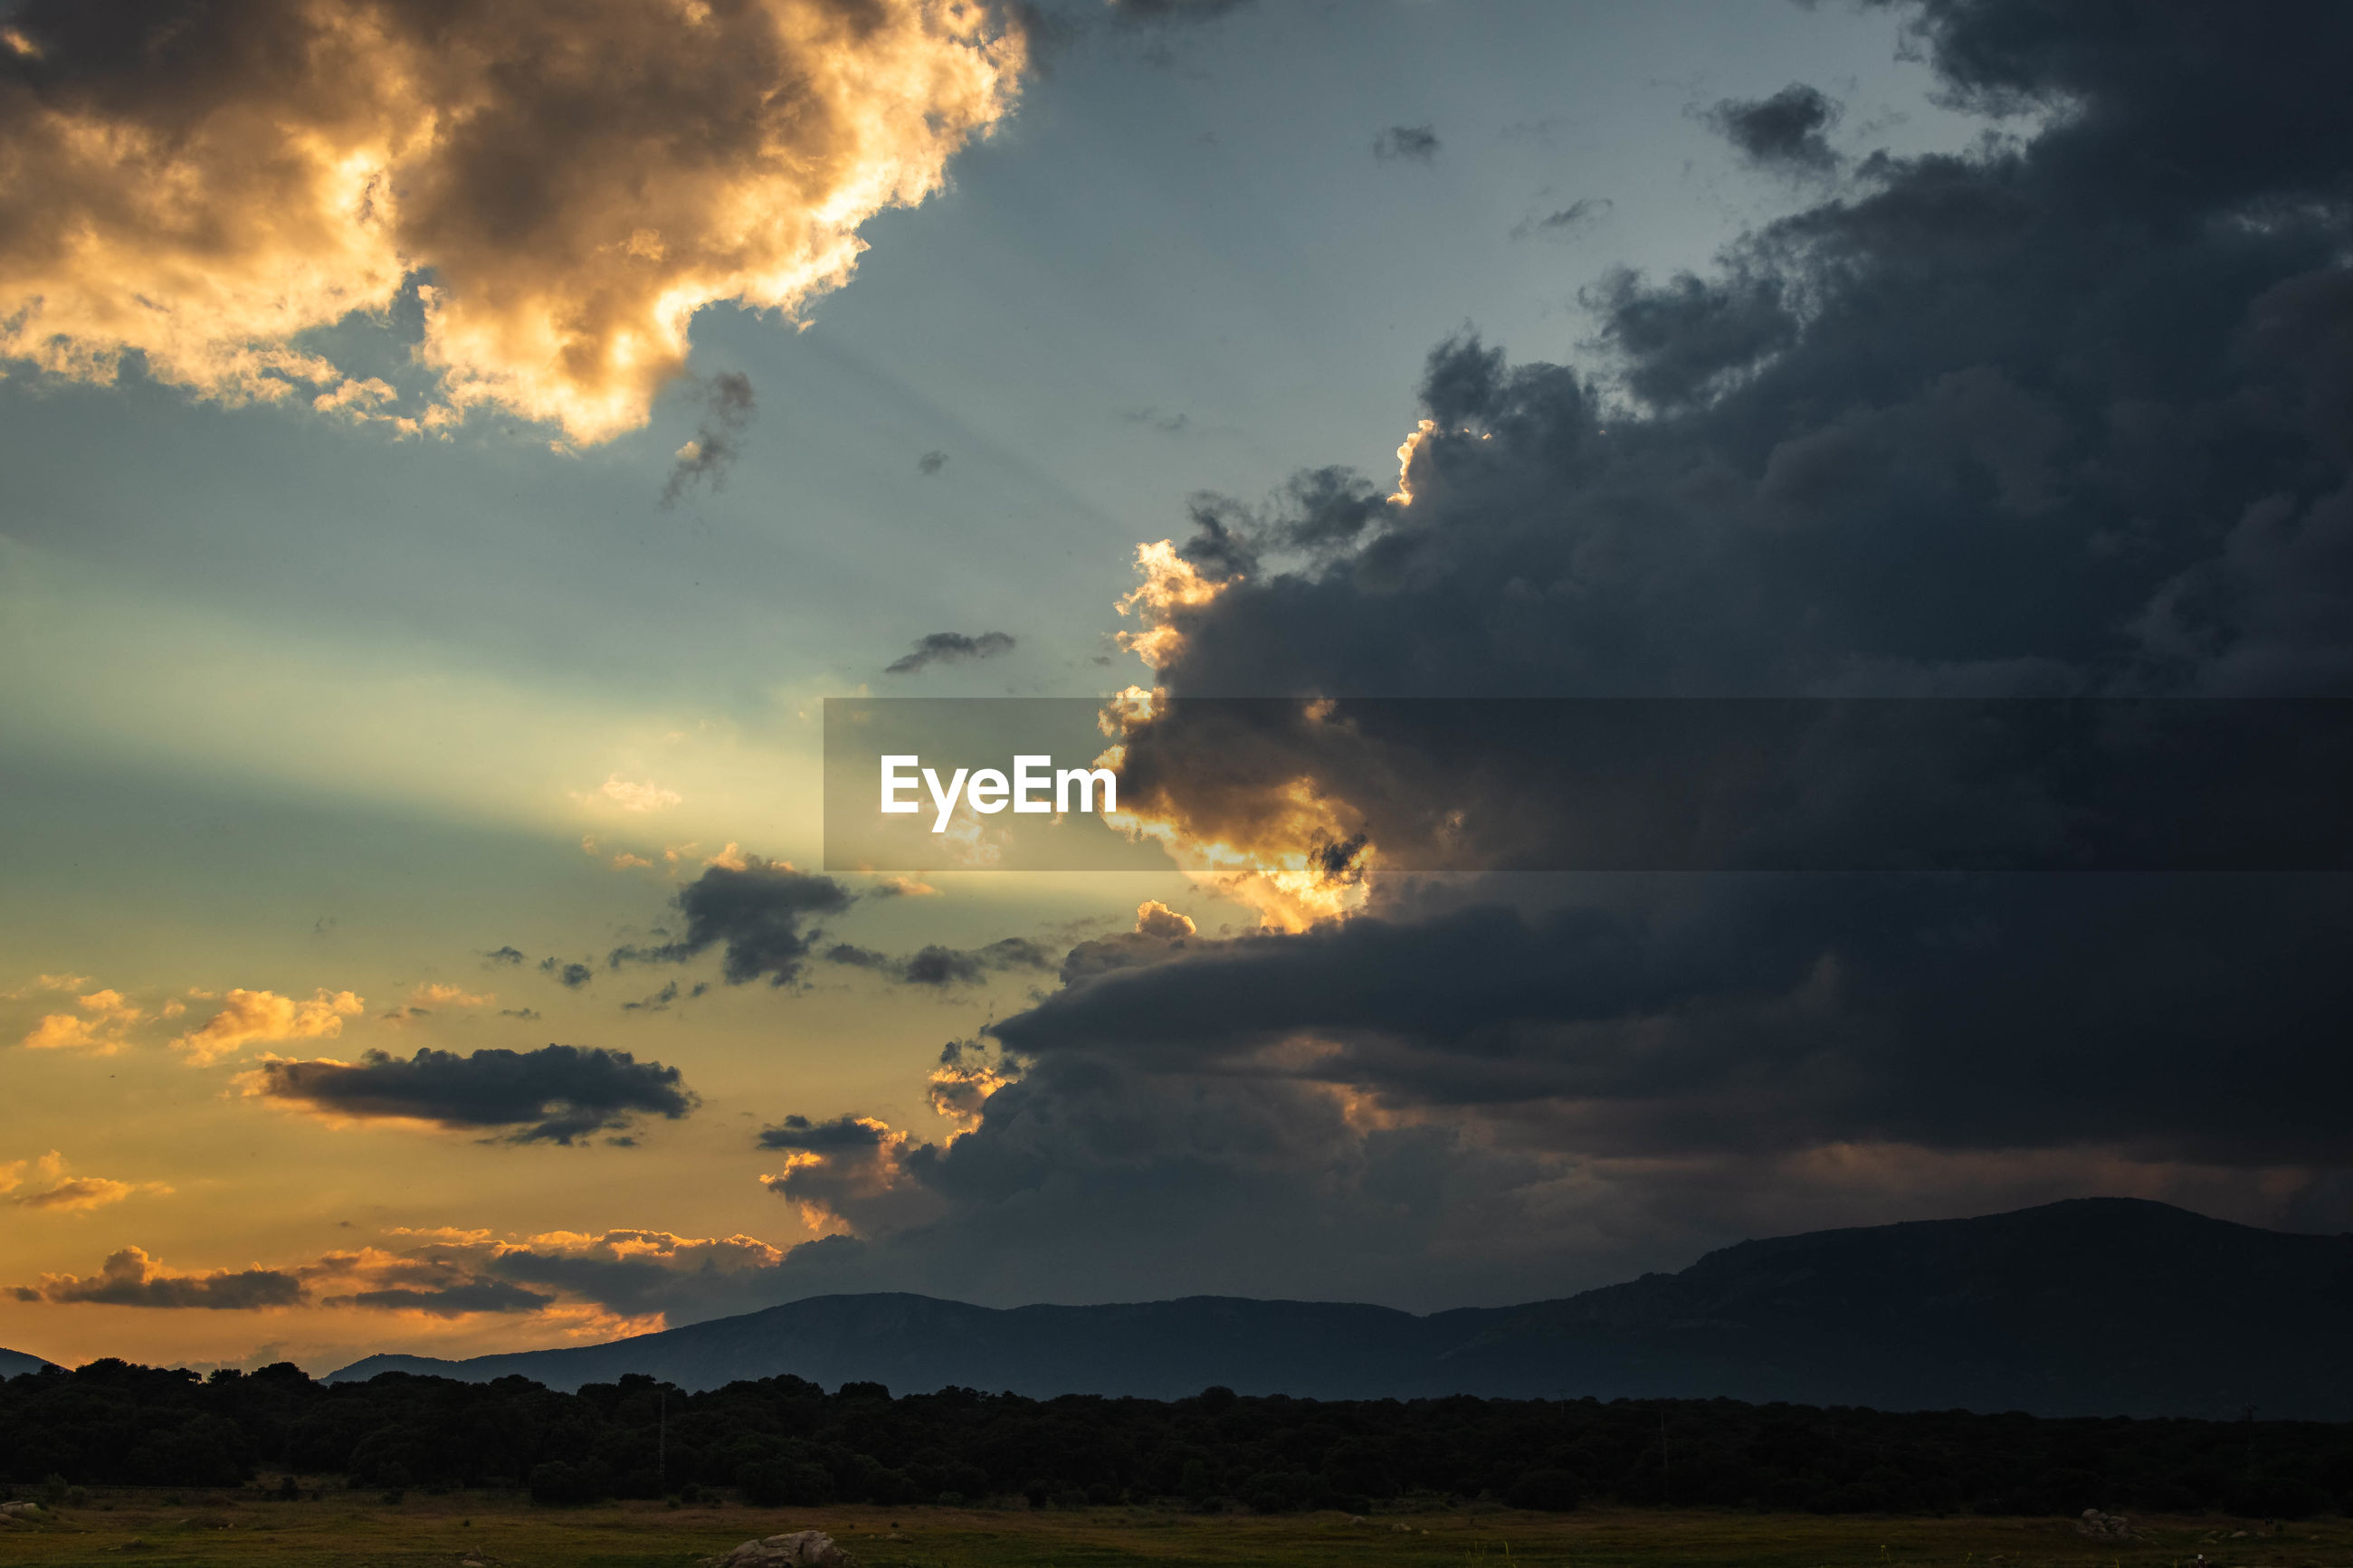 SCENIC VIEW OF SILHOUETTE LANDSCAPE AGAINST DRAMATIC SKY